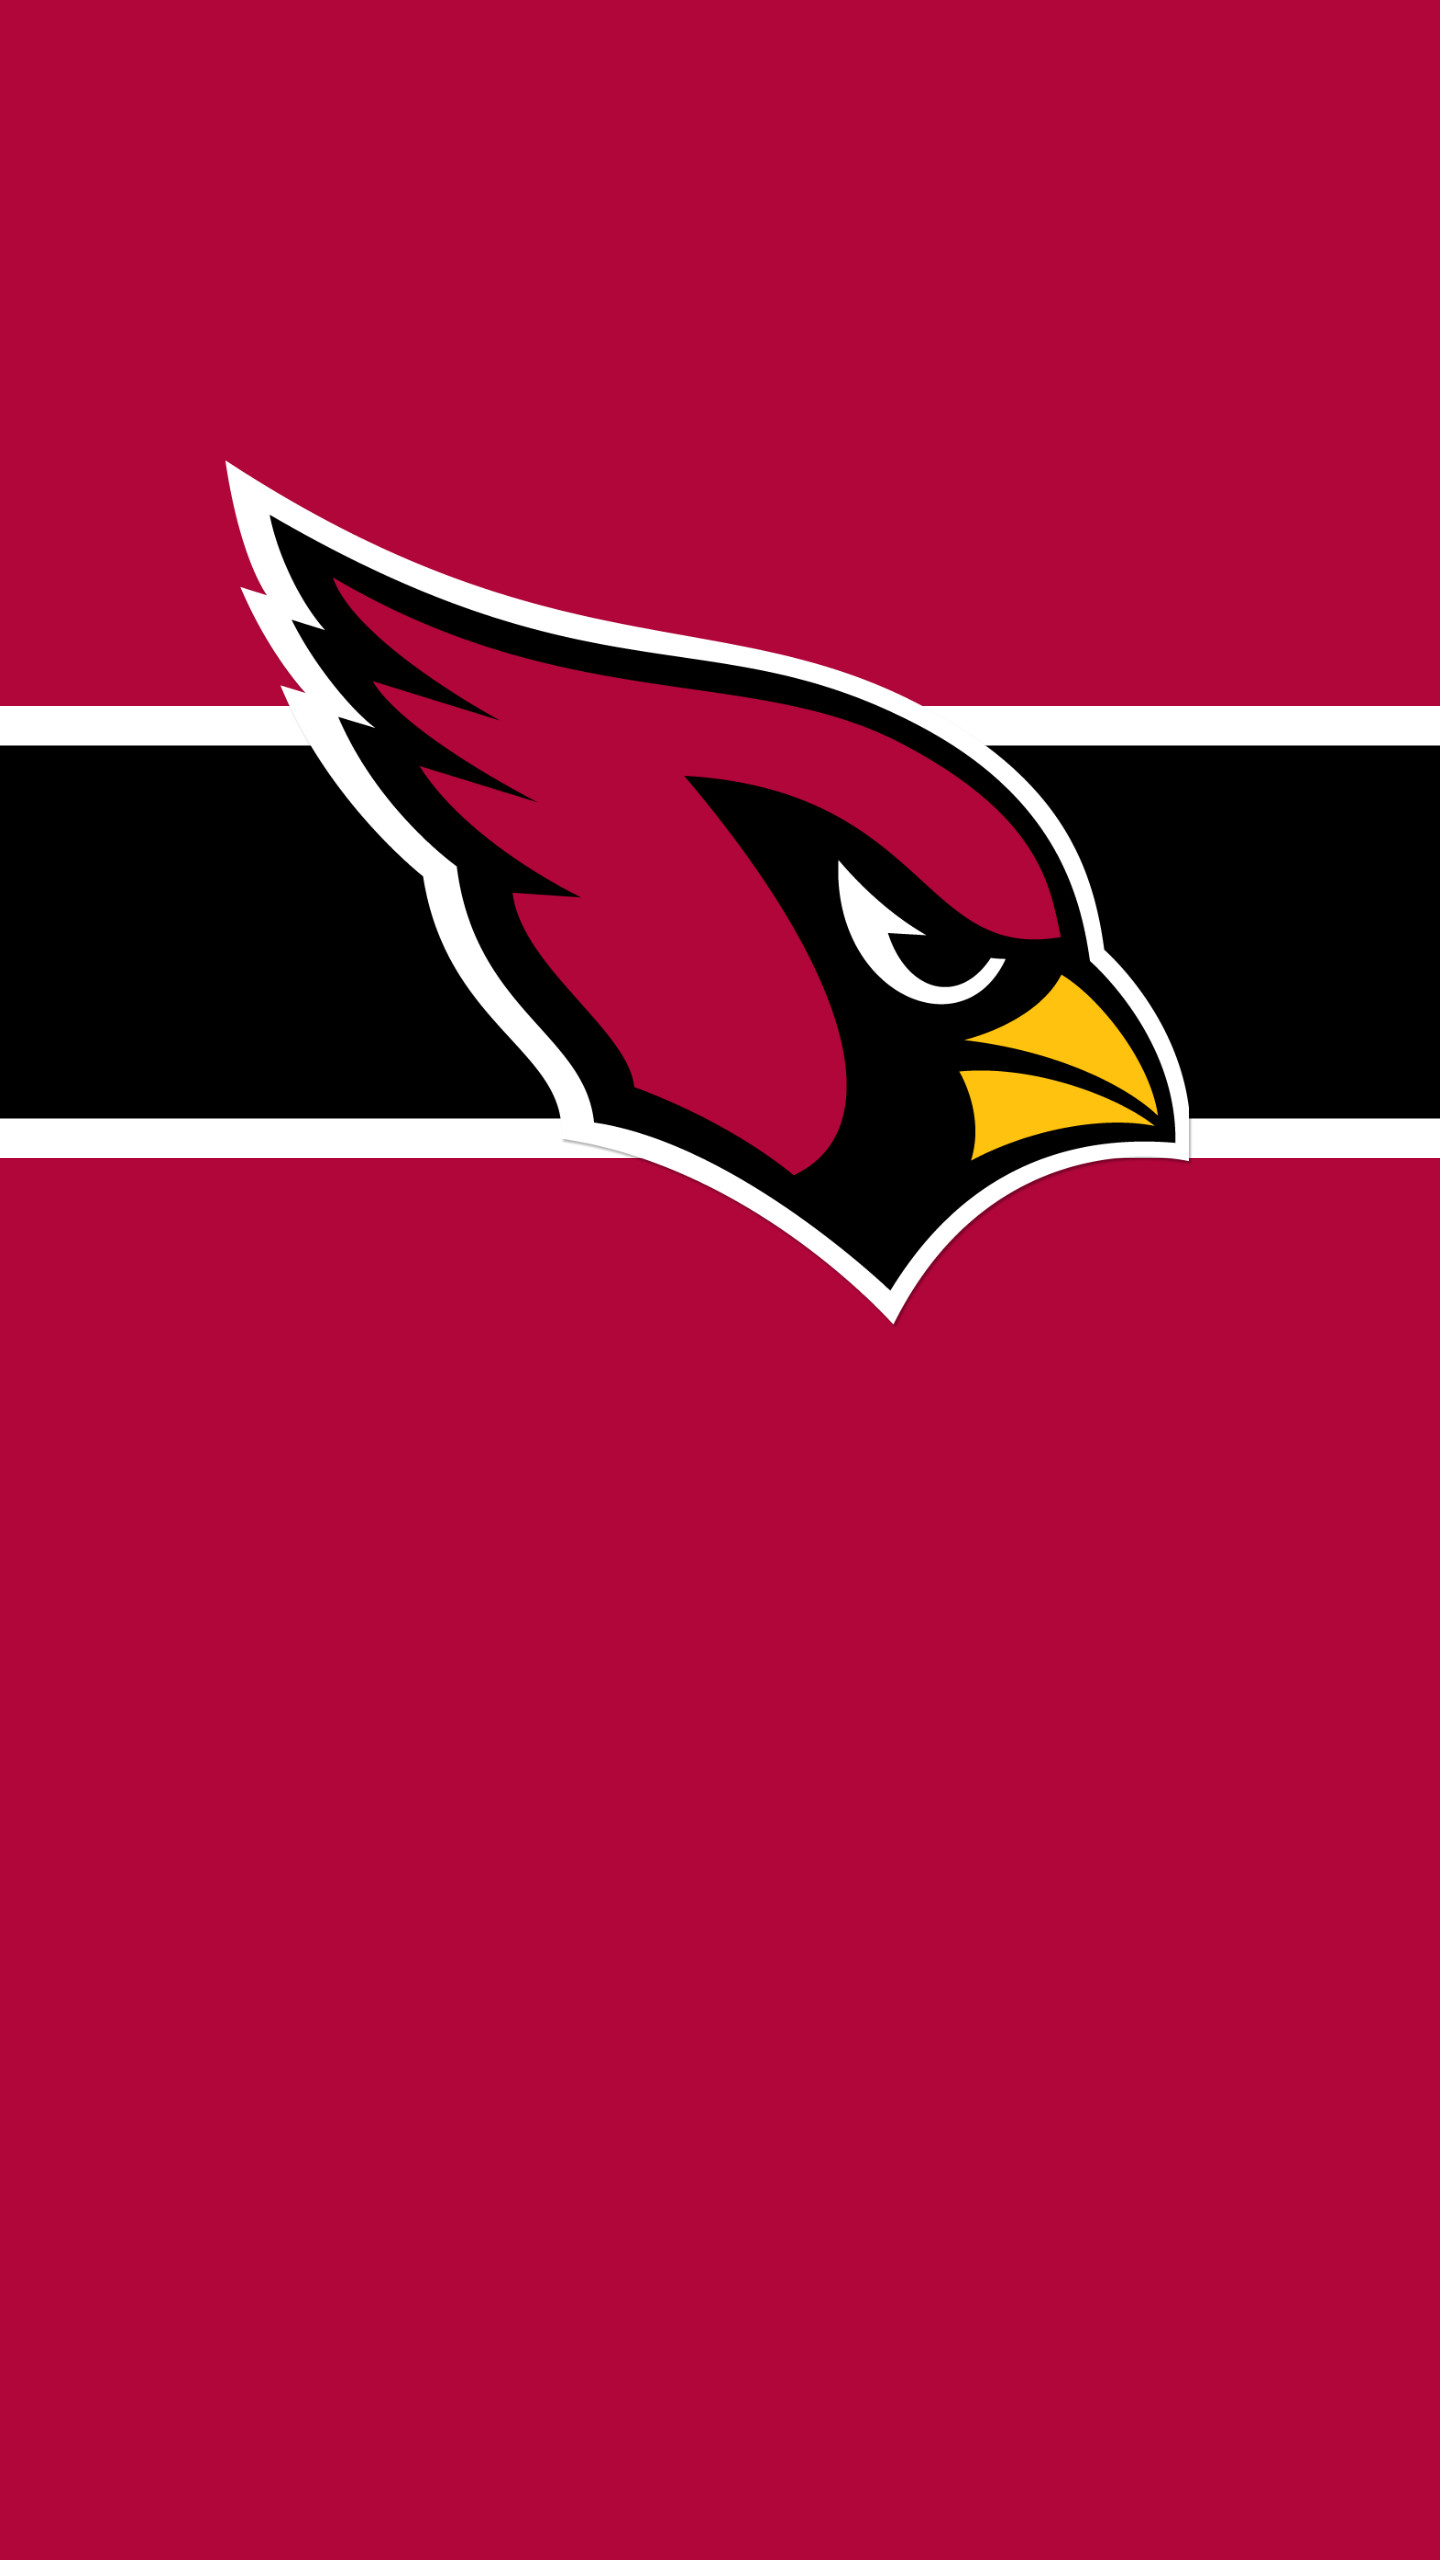 Arizona cardinals wallpapers 71 images - Arizona cardinals screensaver free ...